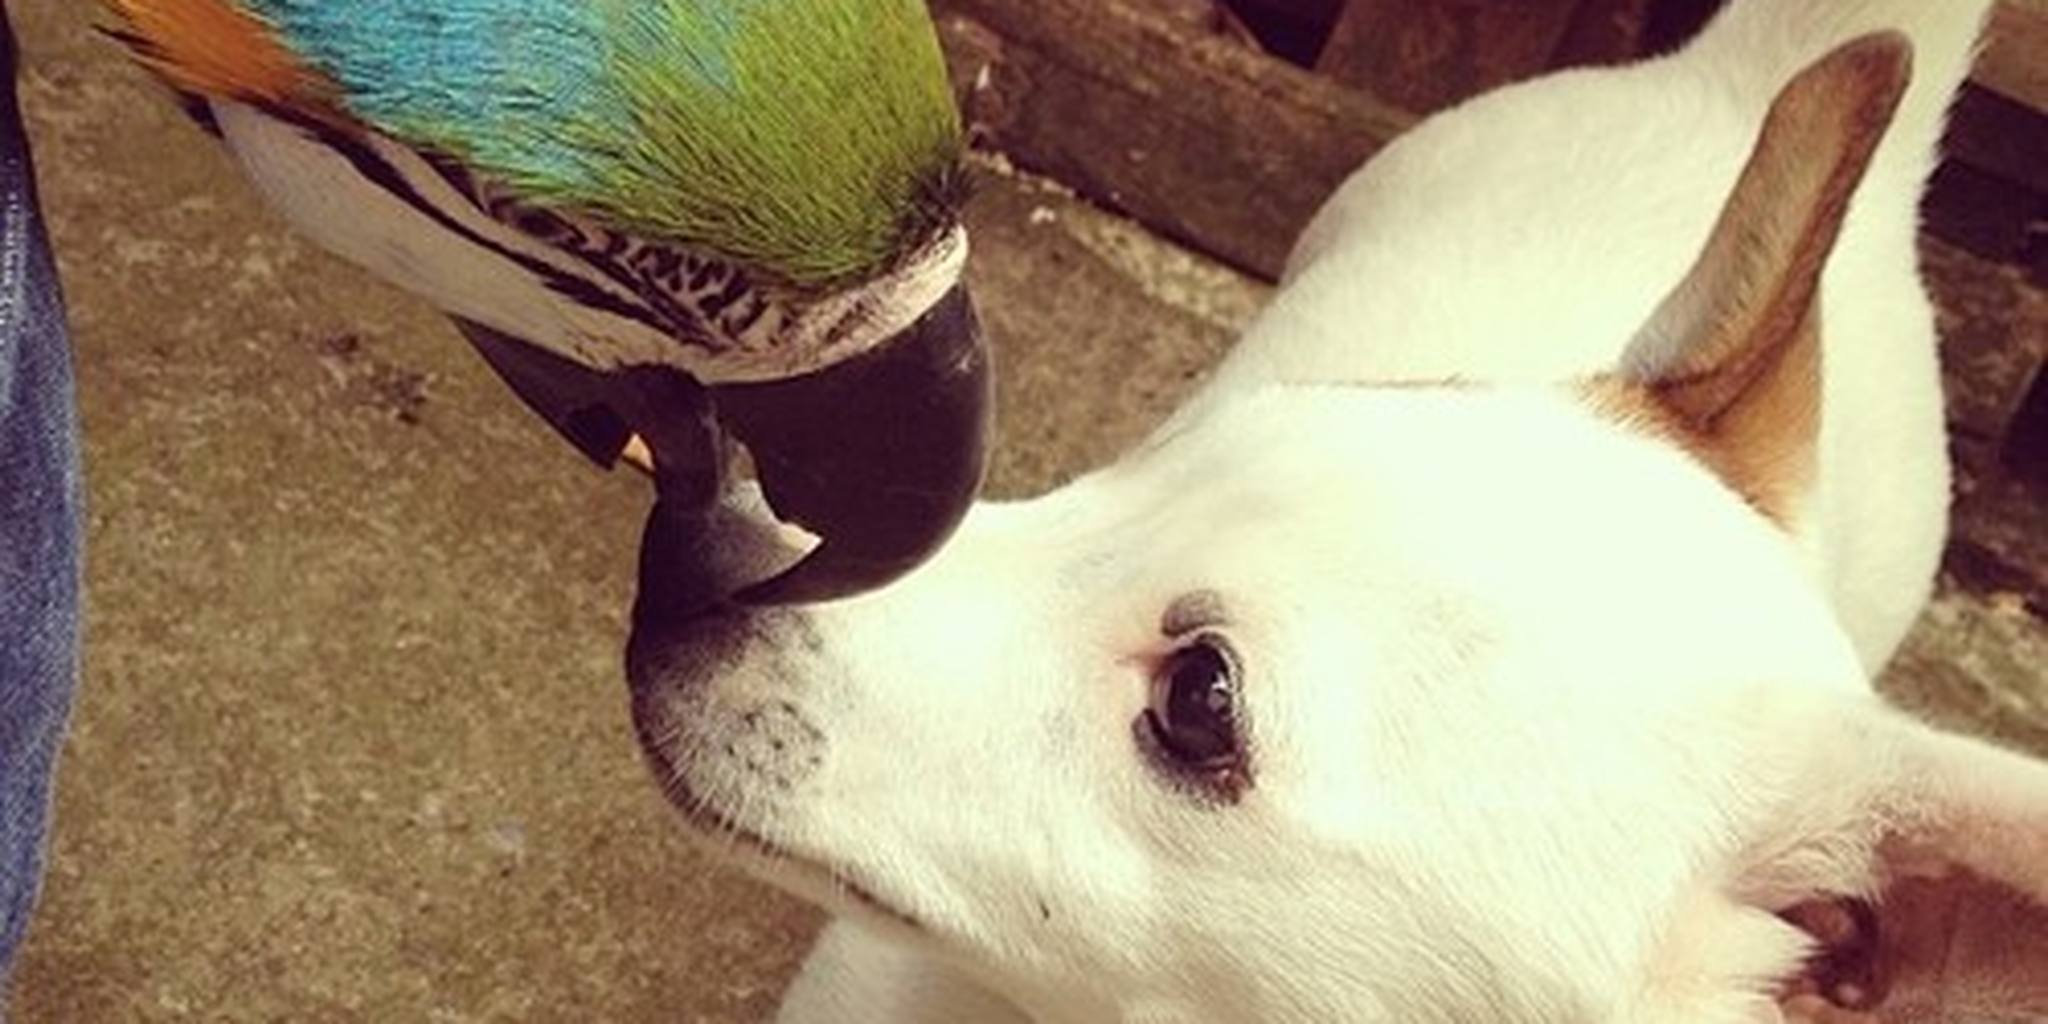 Dog and Parrot No Longer Speaking After Incident ...